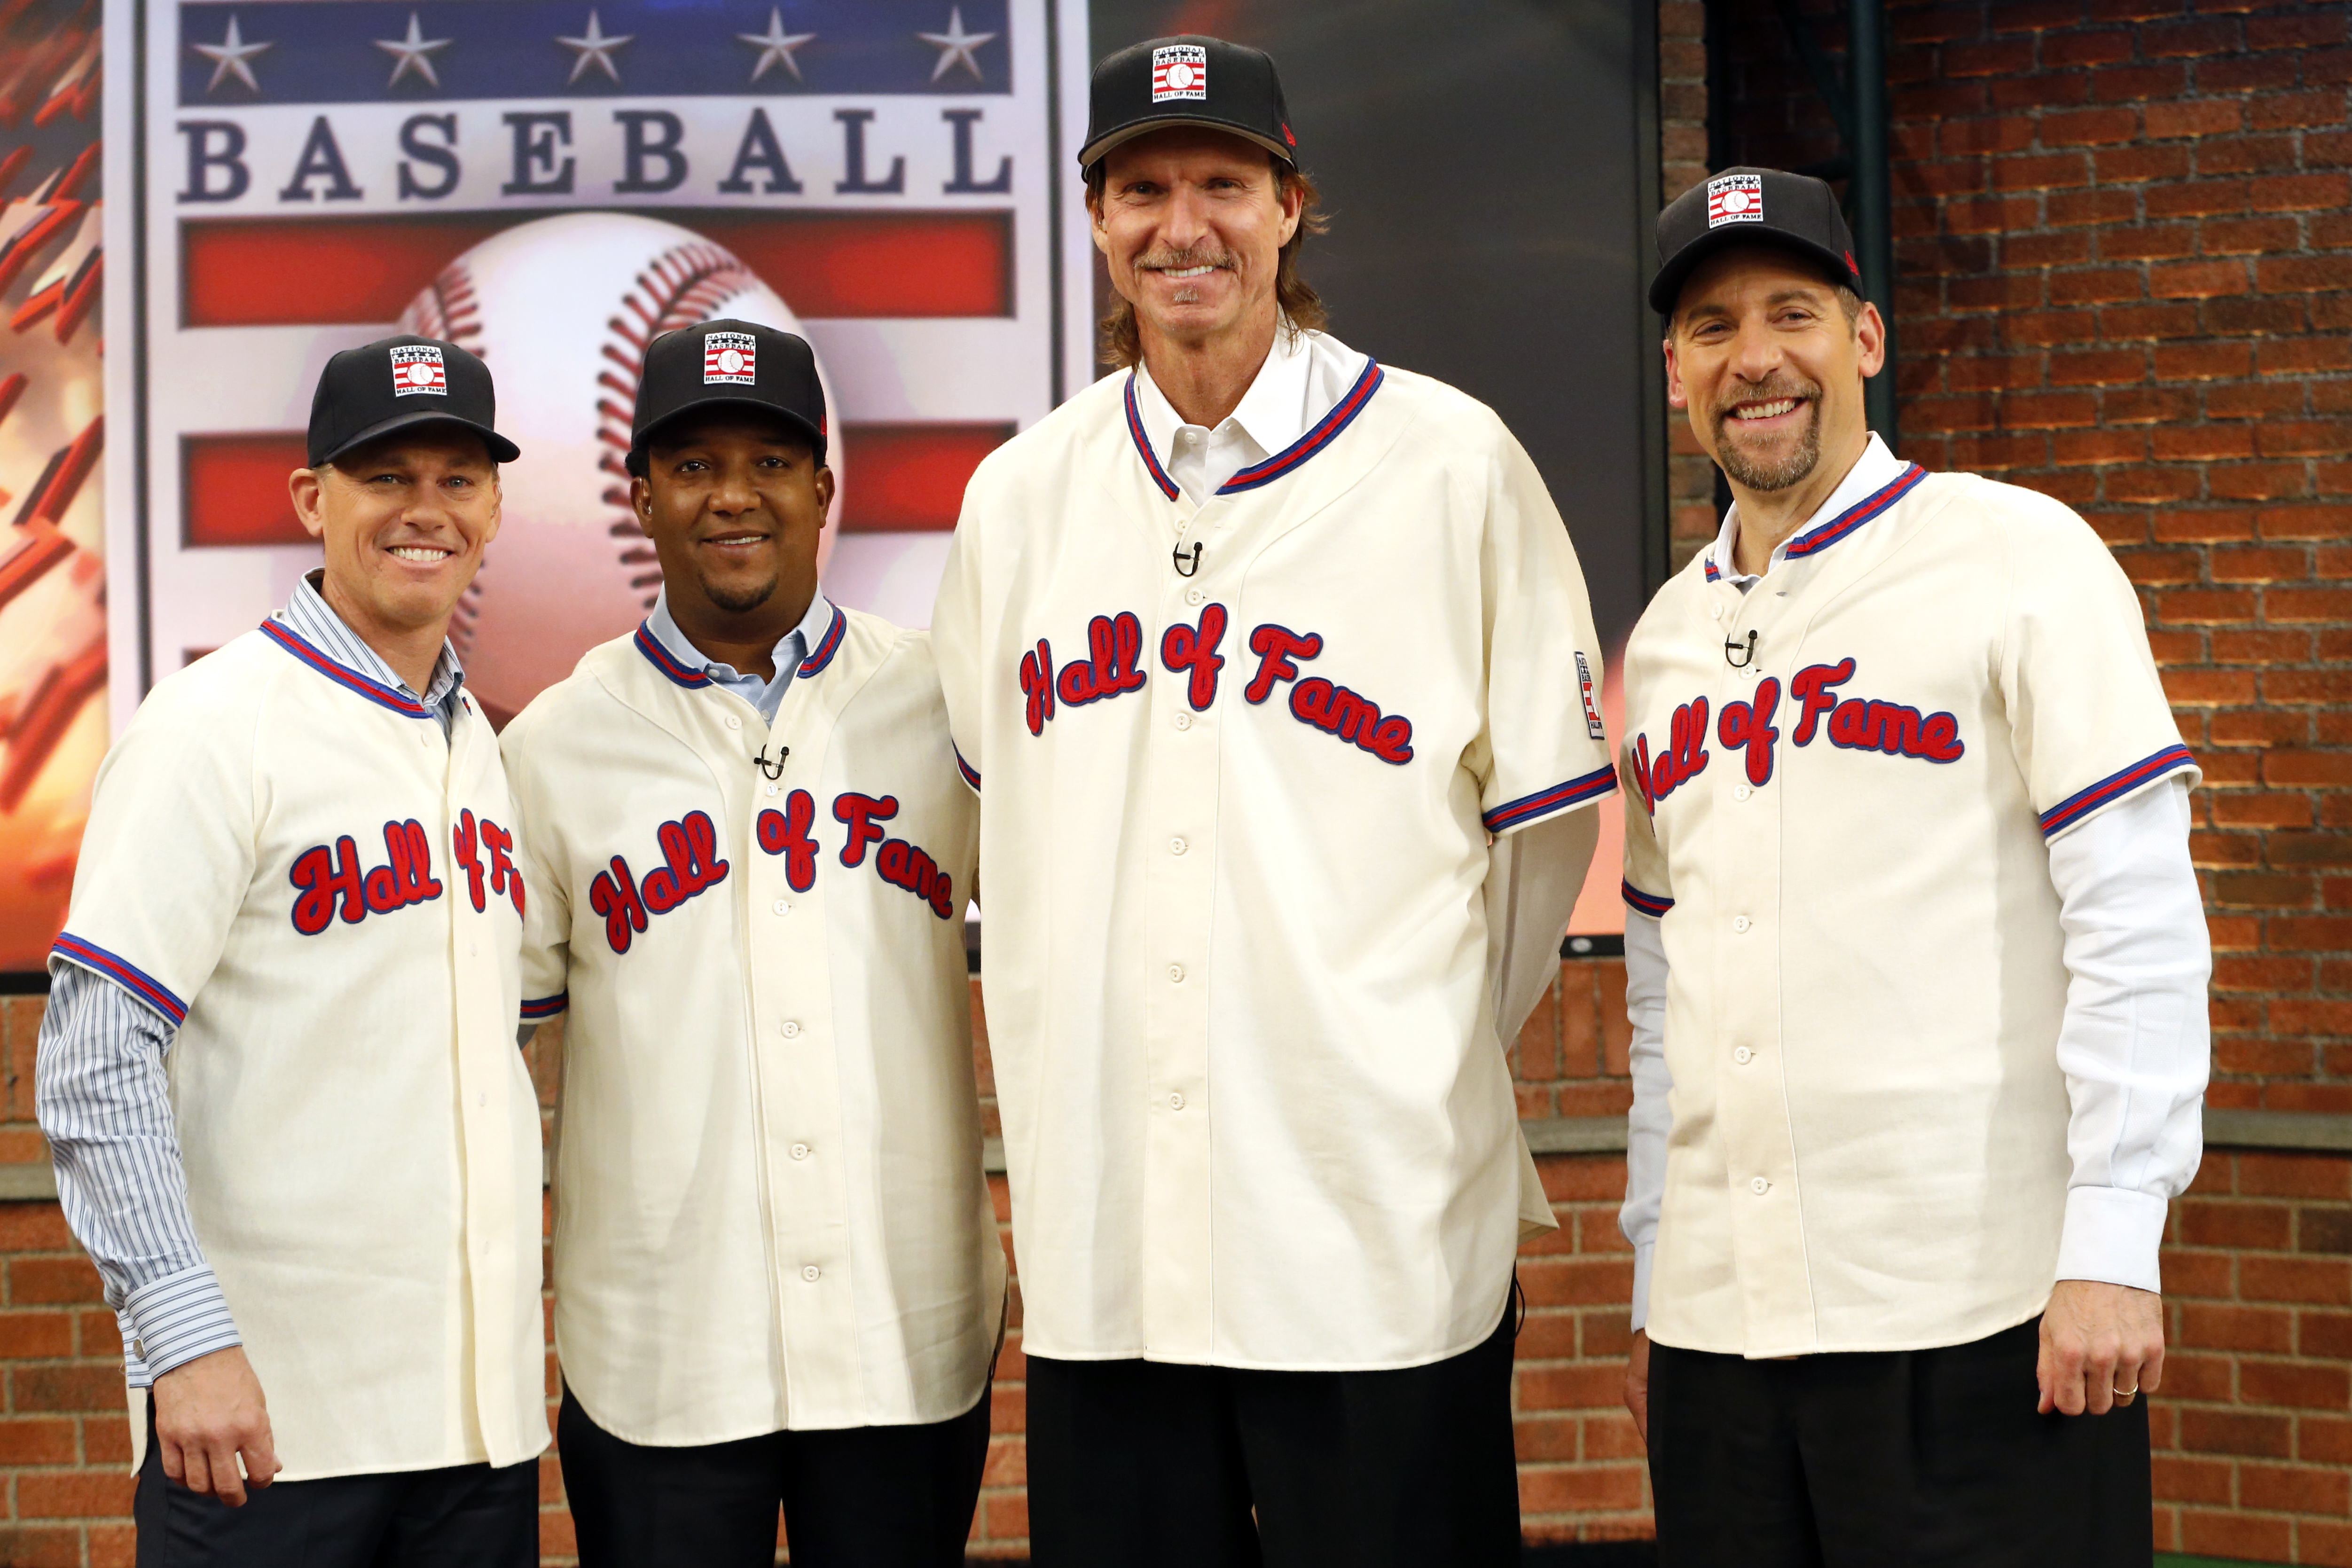 ADVANCE FOR WEEKEND EDITIONS, JUNE 24-26 - FILE - In this Jan. 7, 2015, file photo, members of the National Baseball Hall of Fame 2015 inductee class, from left, Craig Biggio, Pedro Martinez, Randy Johnson and John Smoltz pose for photographers at the MLB